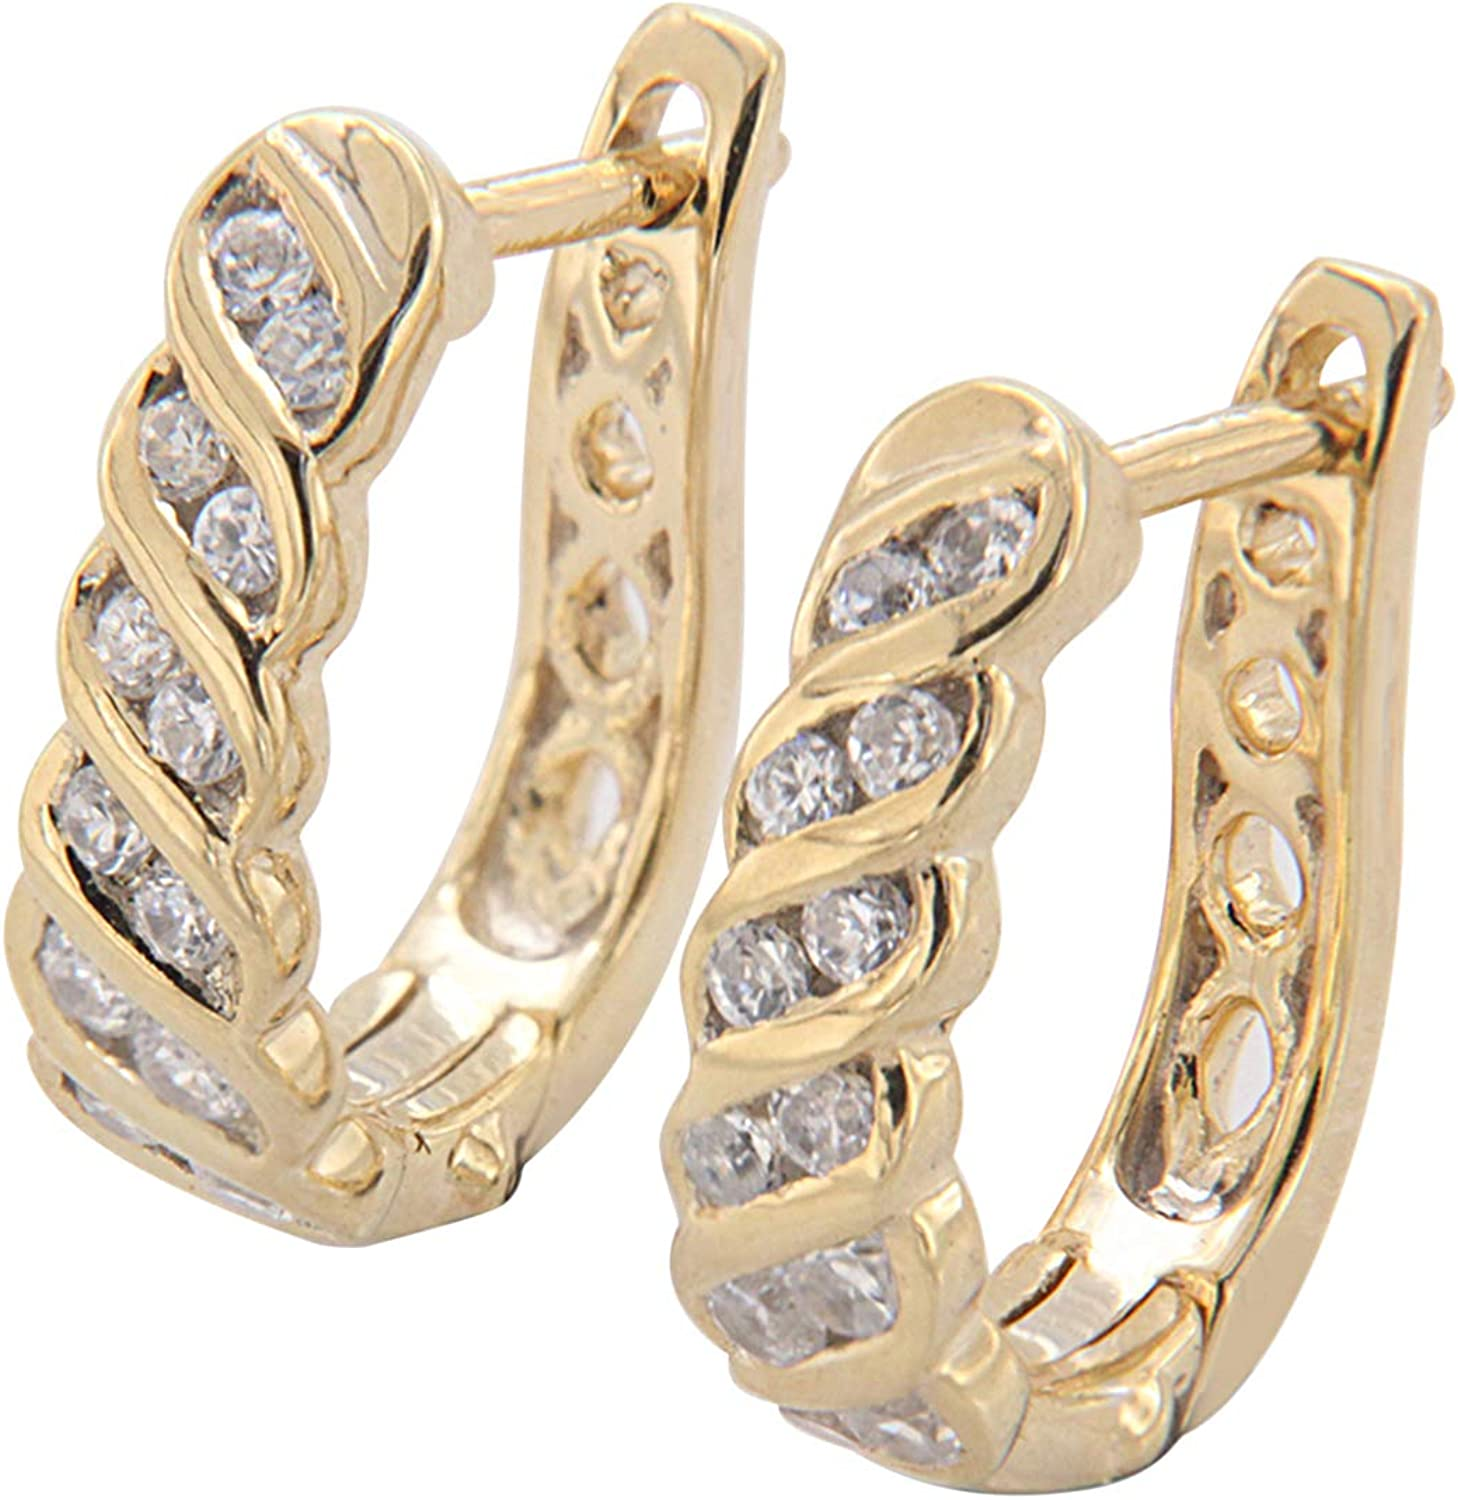 1 Ct Bezel Set Round cut Micro Pave Simulated Diamond Real 14k Yellow Gold Hoop Earring's with Cubic Zirconia